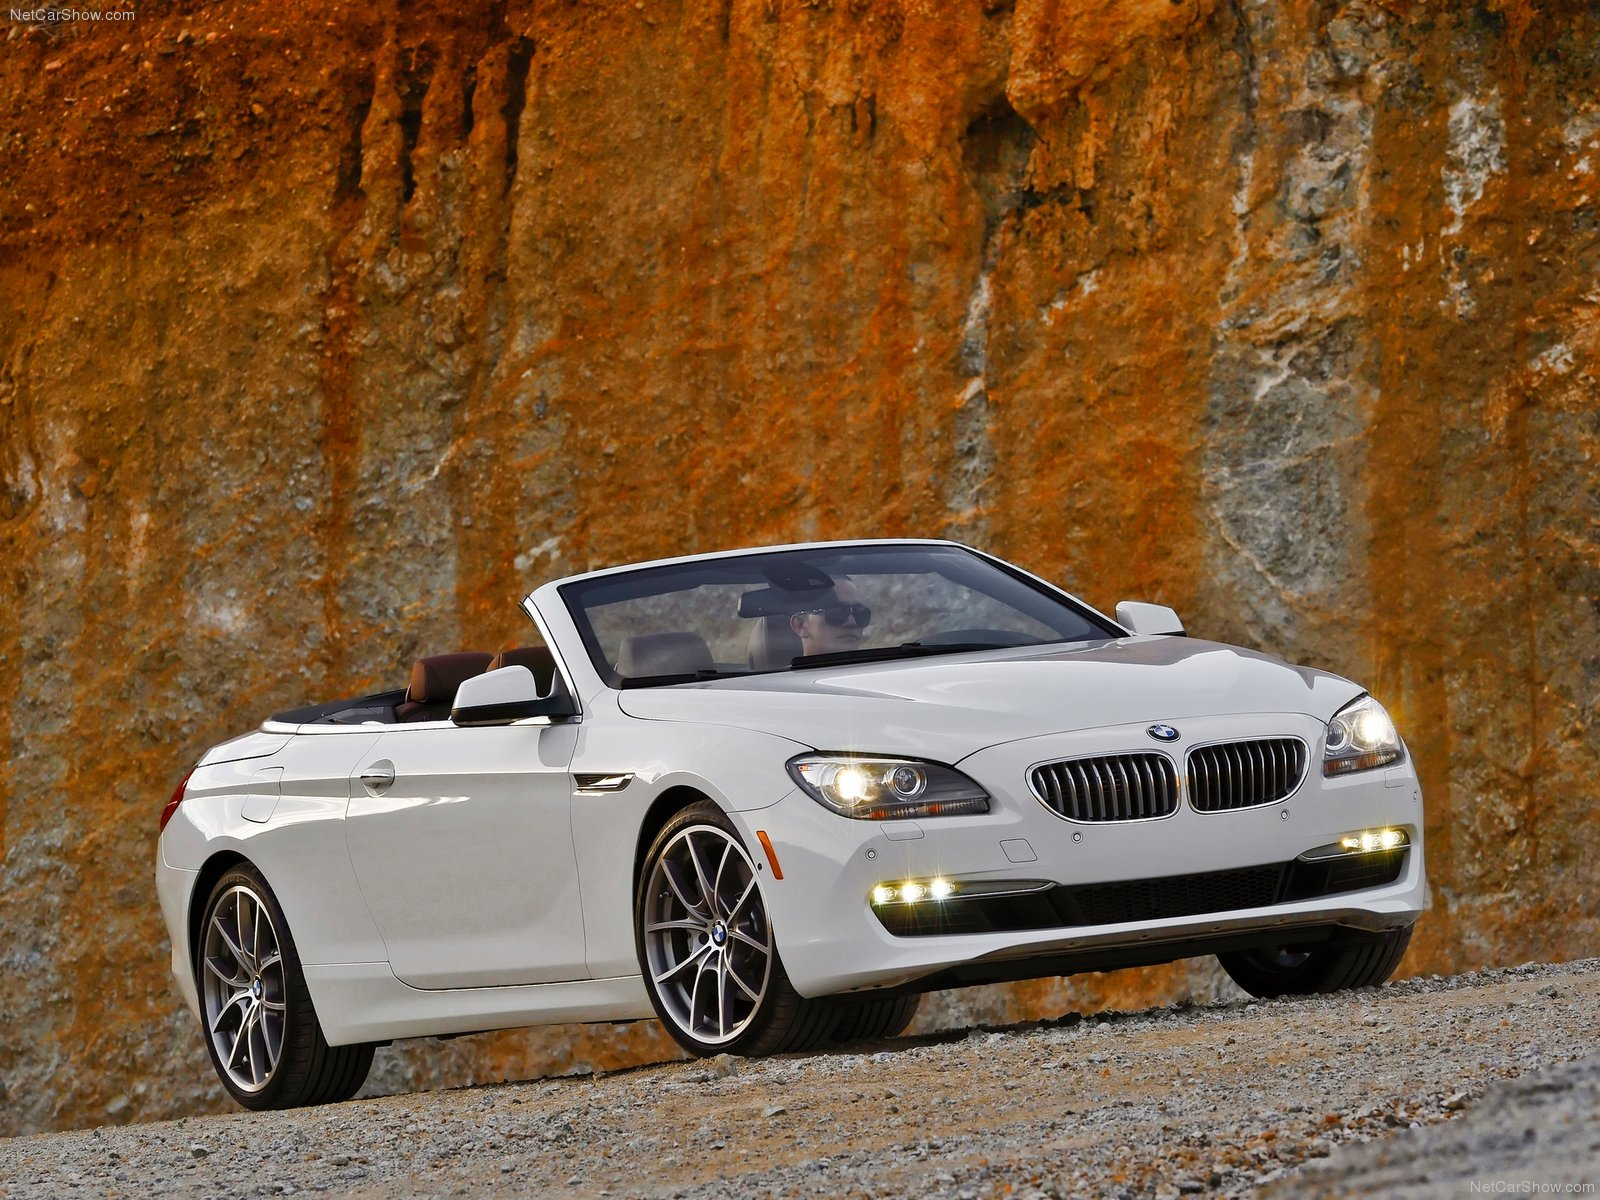 BMW 6-series F13 Convertible photo 81141